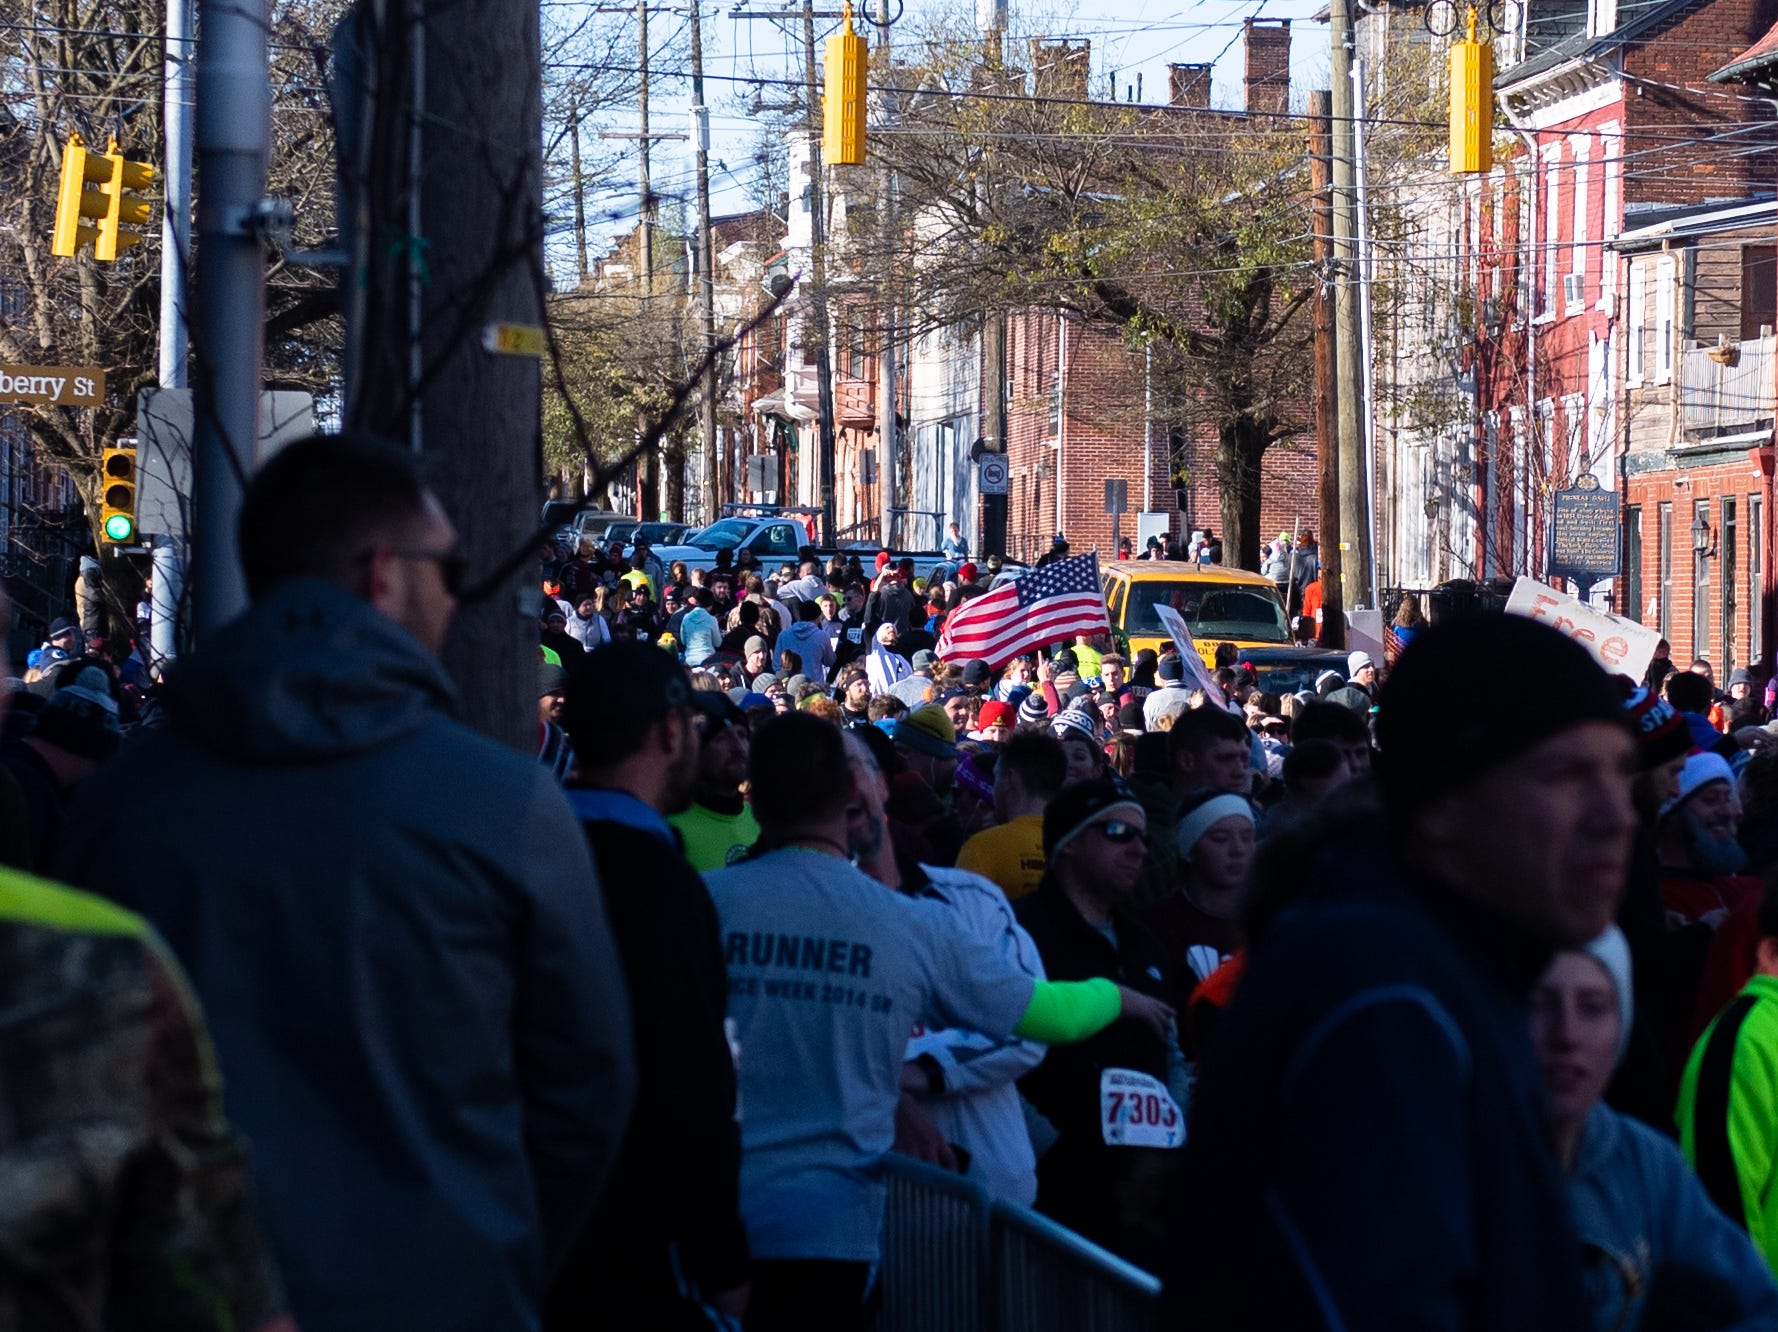 Racers fill up West King Street after completing the 22nd Annual Turkey Trot 5K, on Thanksgiving Day, November 22, 2018.